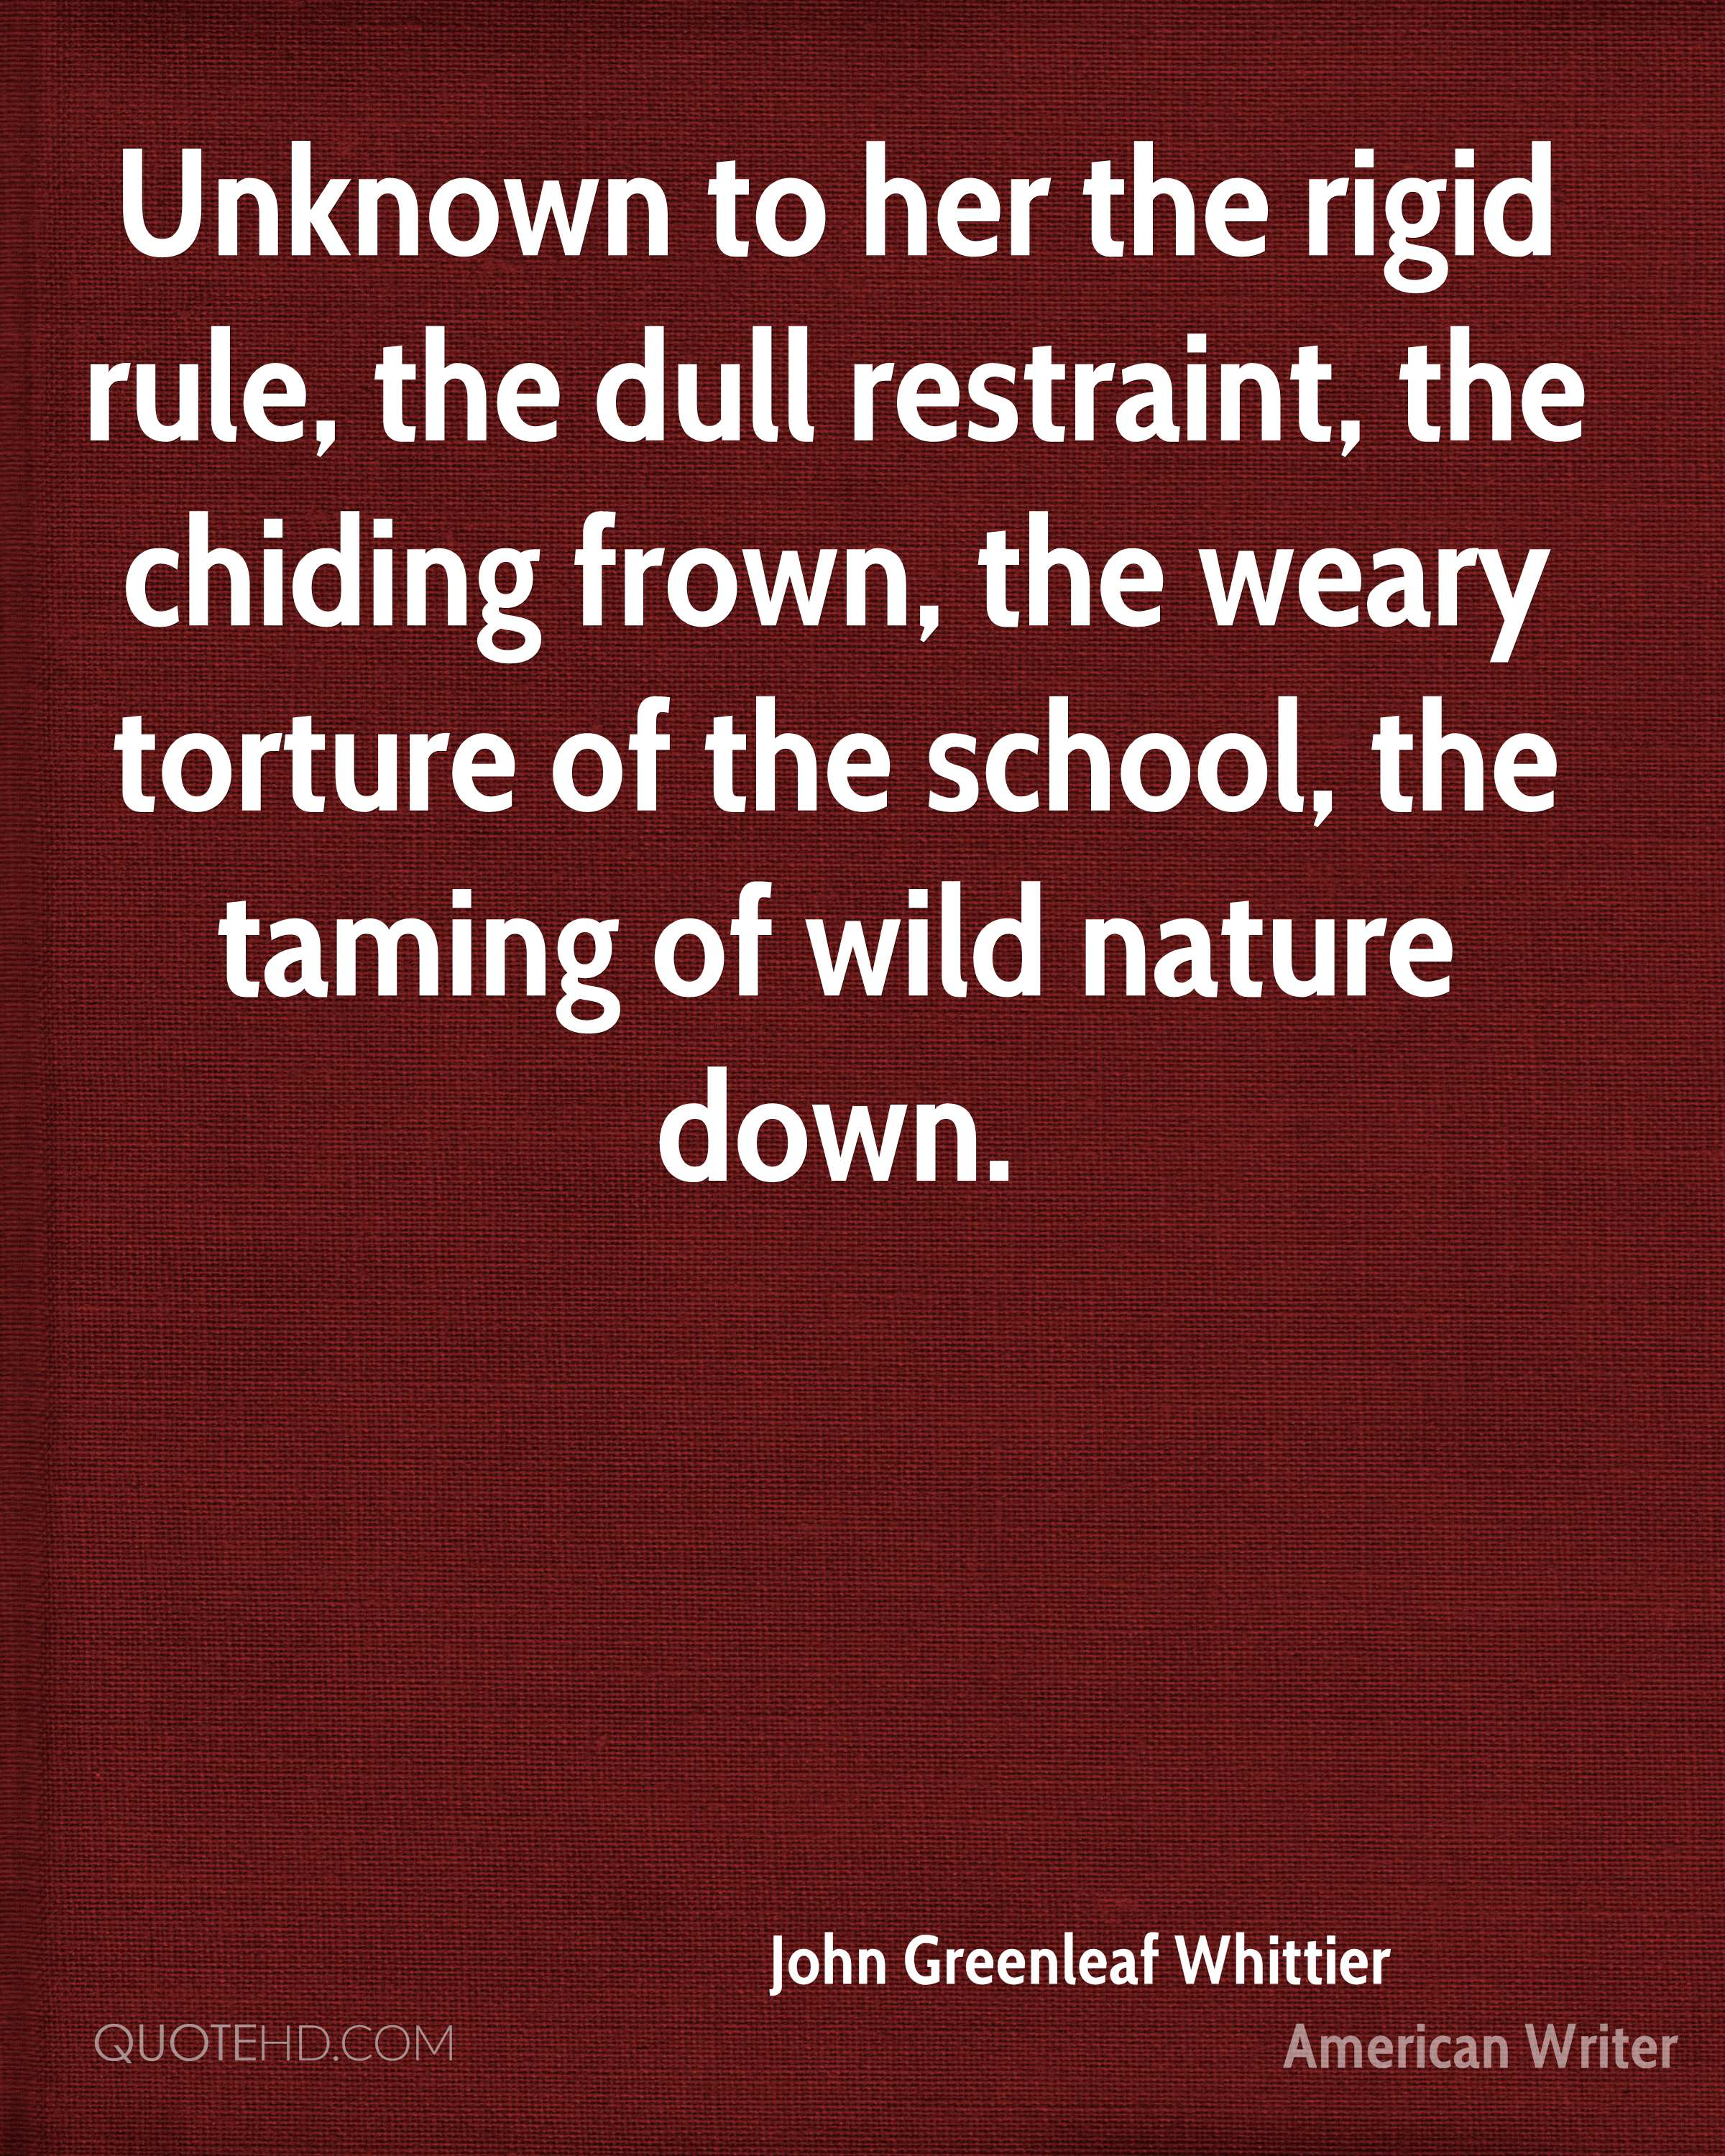 Unknown to her the rigid rule, the dull restraint, the chiding frown, the weary torture of the school, the taming of wild nature down.